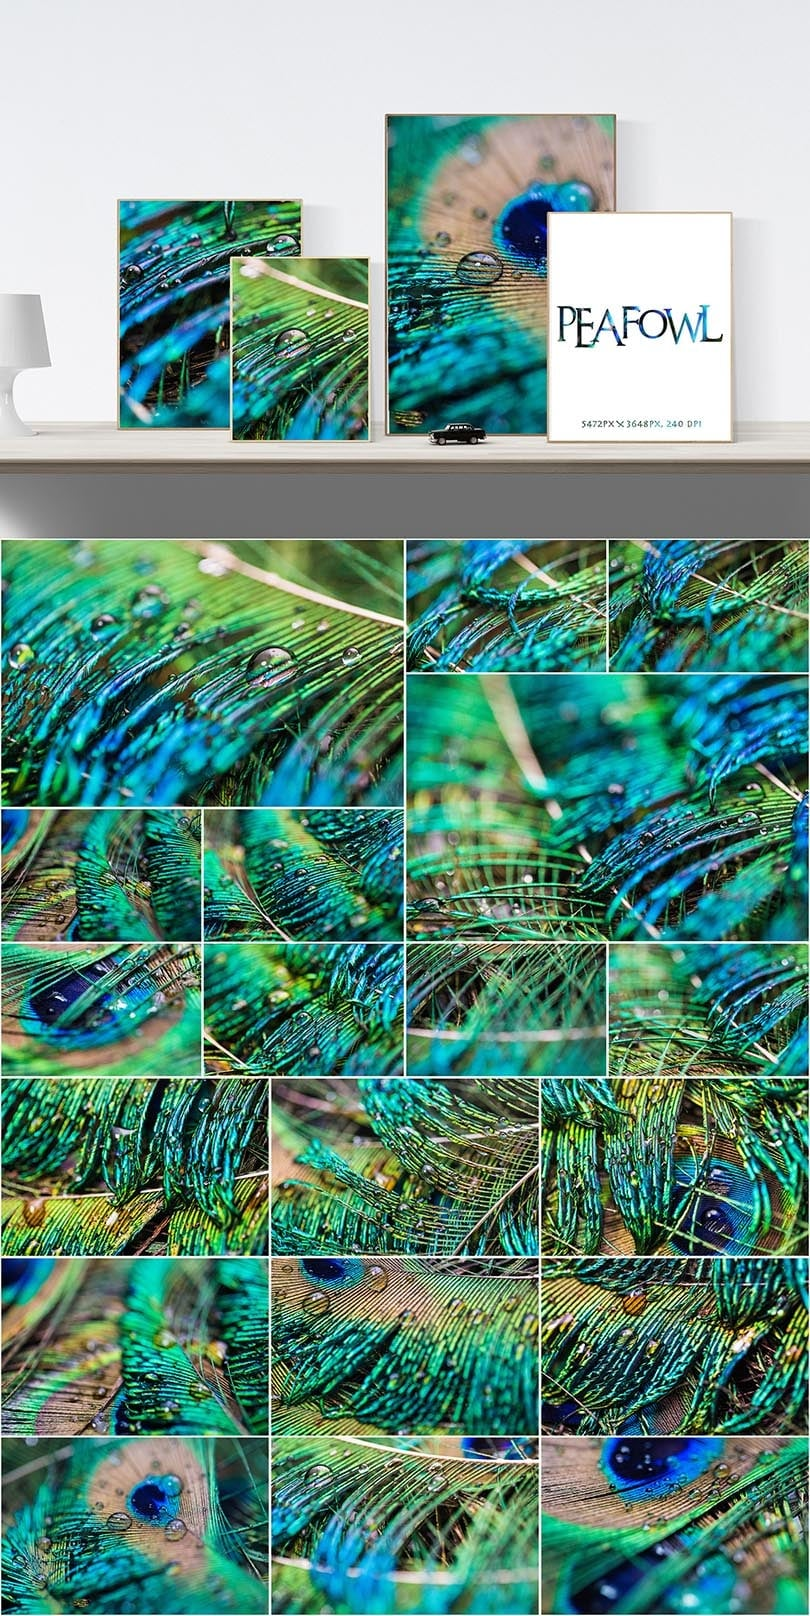 Digital Art Collection - $29 ONLY - 46 Peafowl